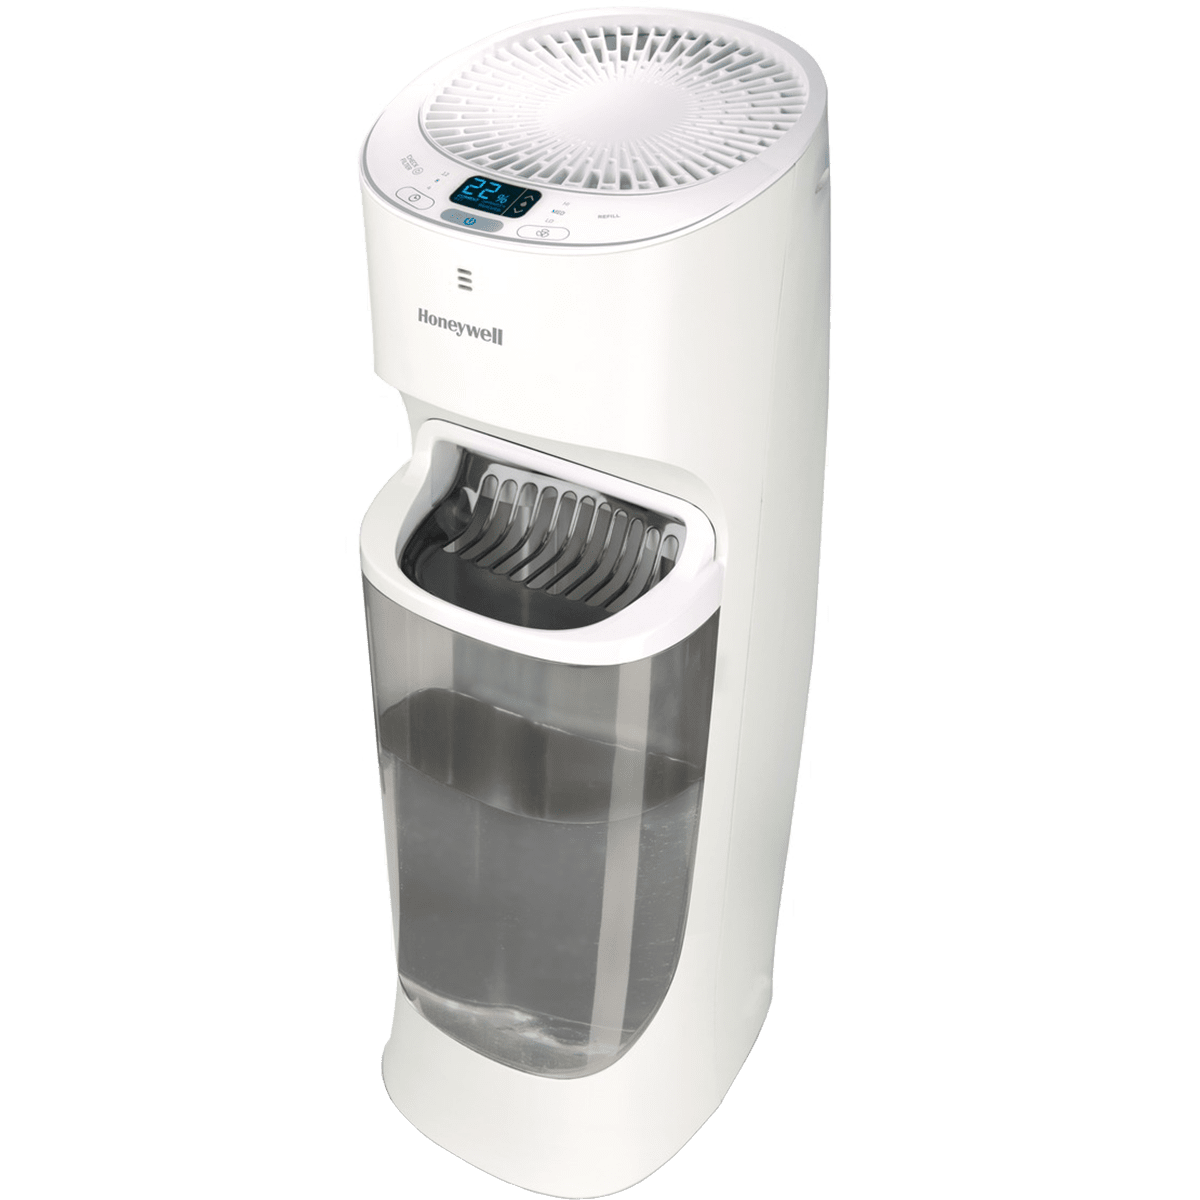 Honeywell humidifier top fill tower energy star humidifiers for Humidifier cleaning fish